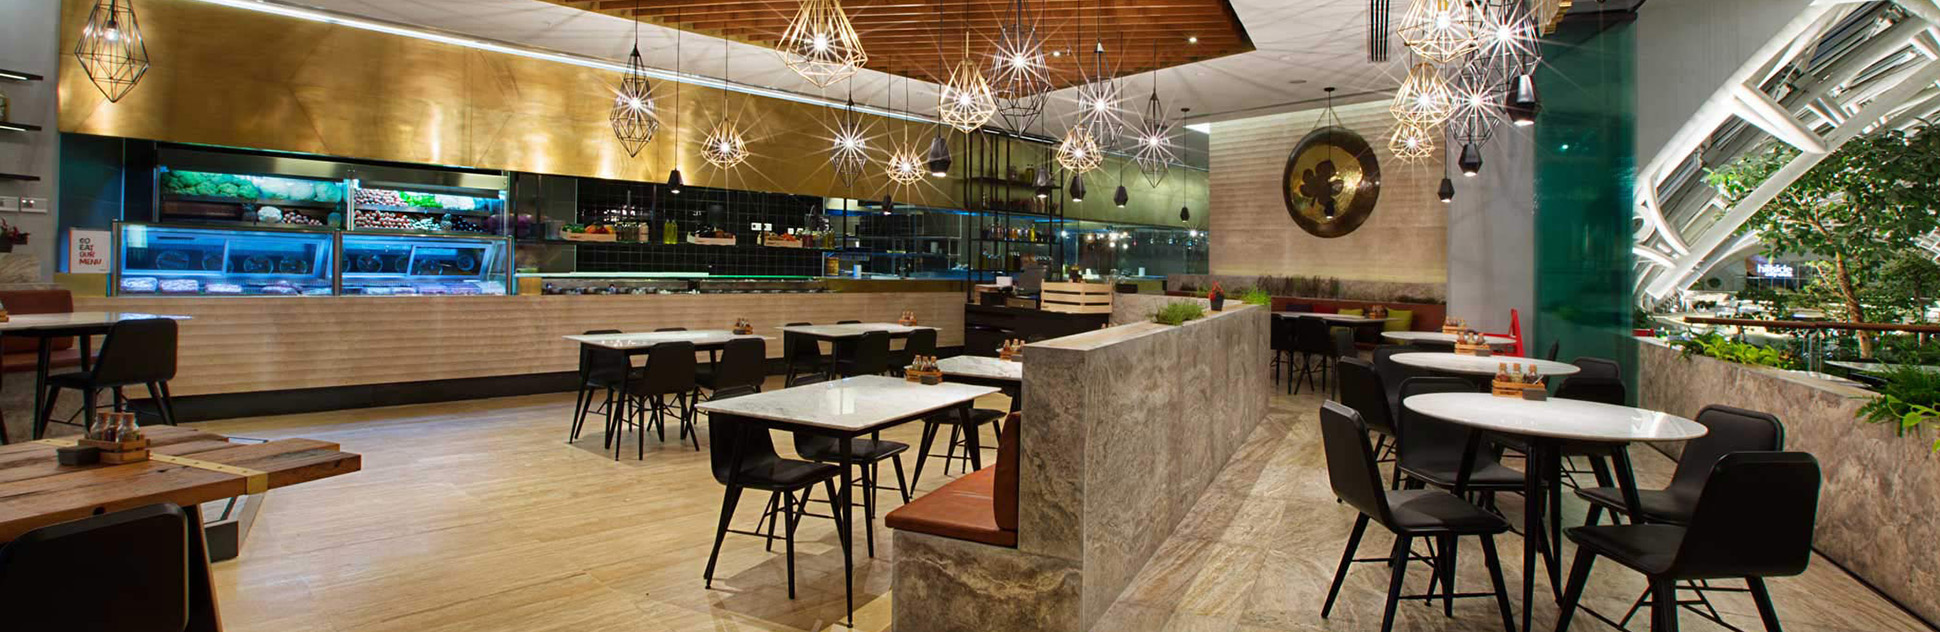 tratto stone restaurant interiors